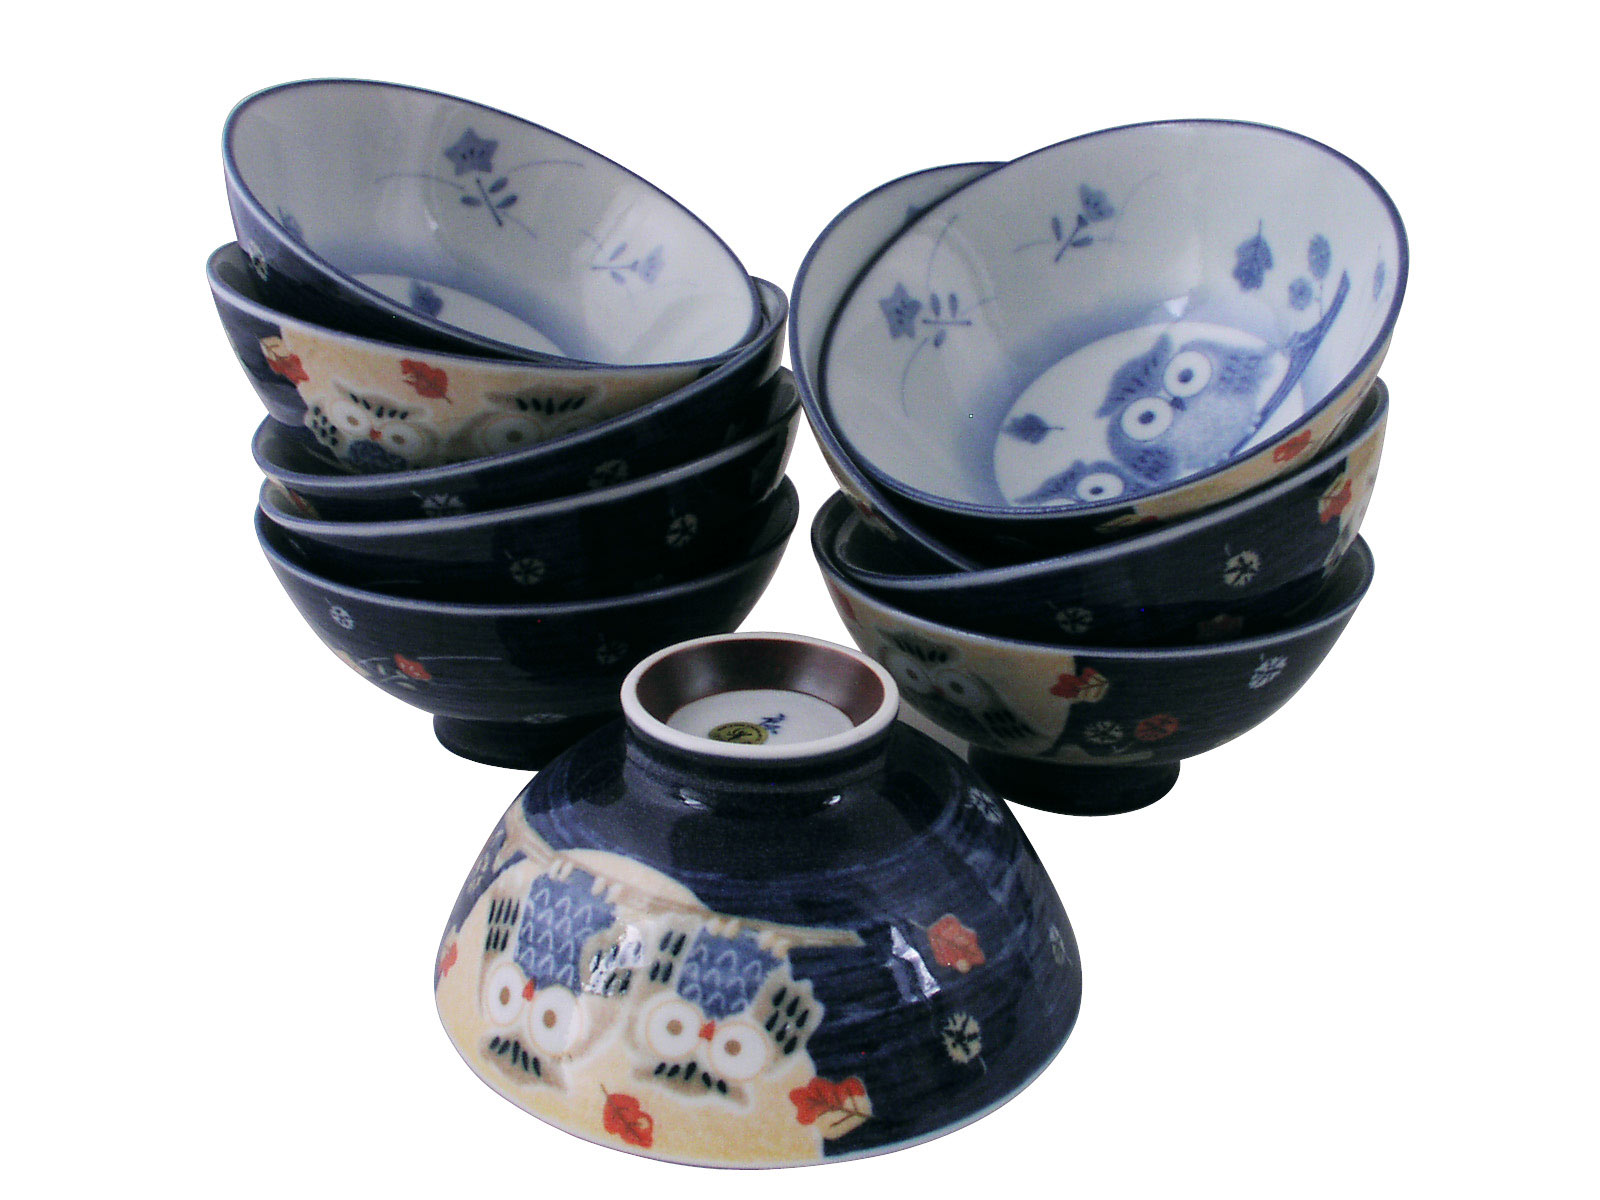 Idyllic Owls Multi Colored Ceramic Japanese Rice Bowl Set